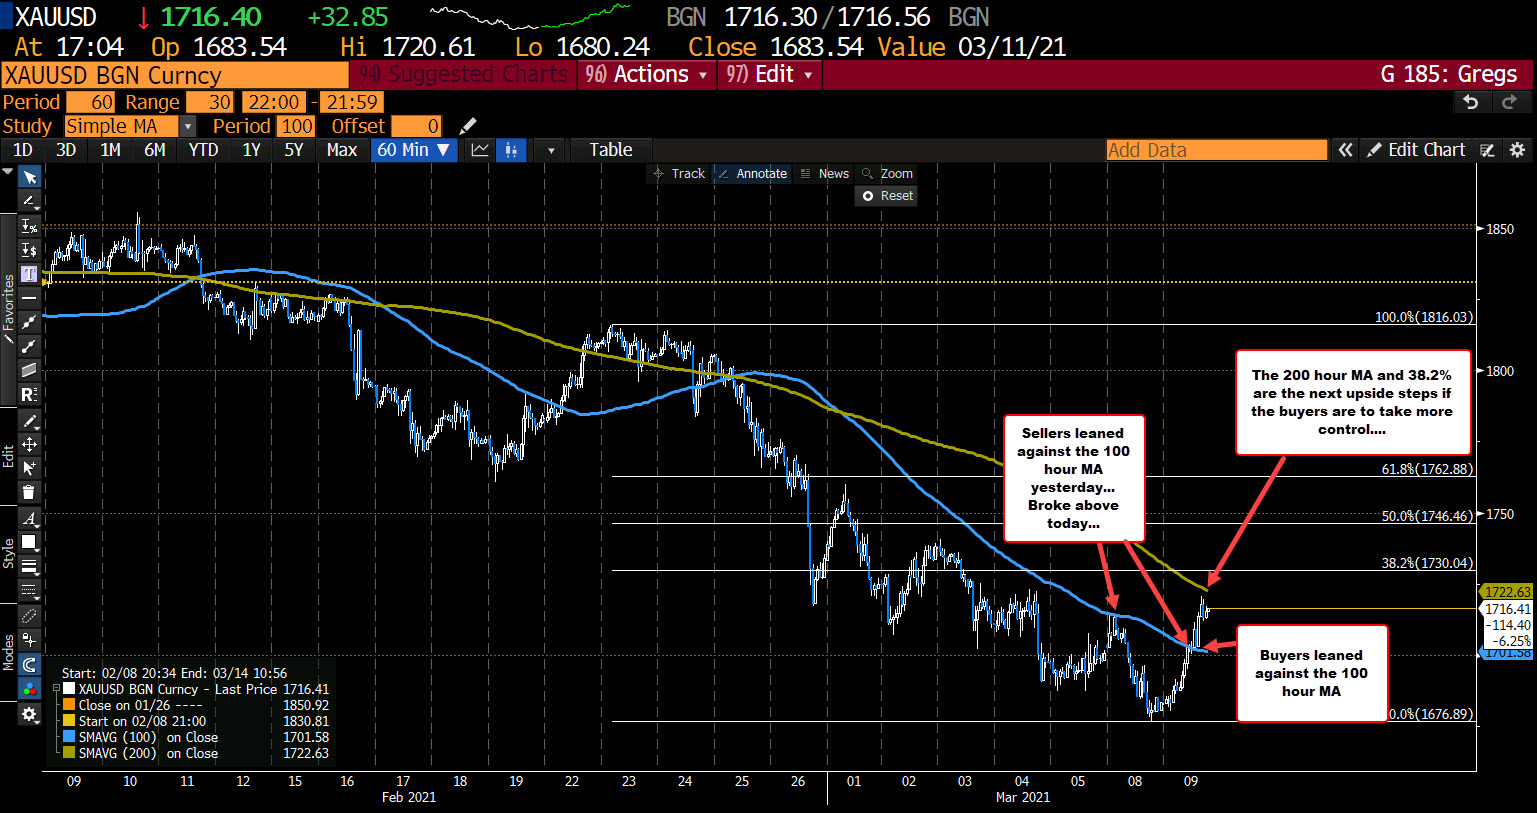 Gold on the hourly chart